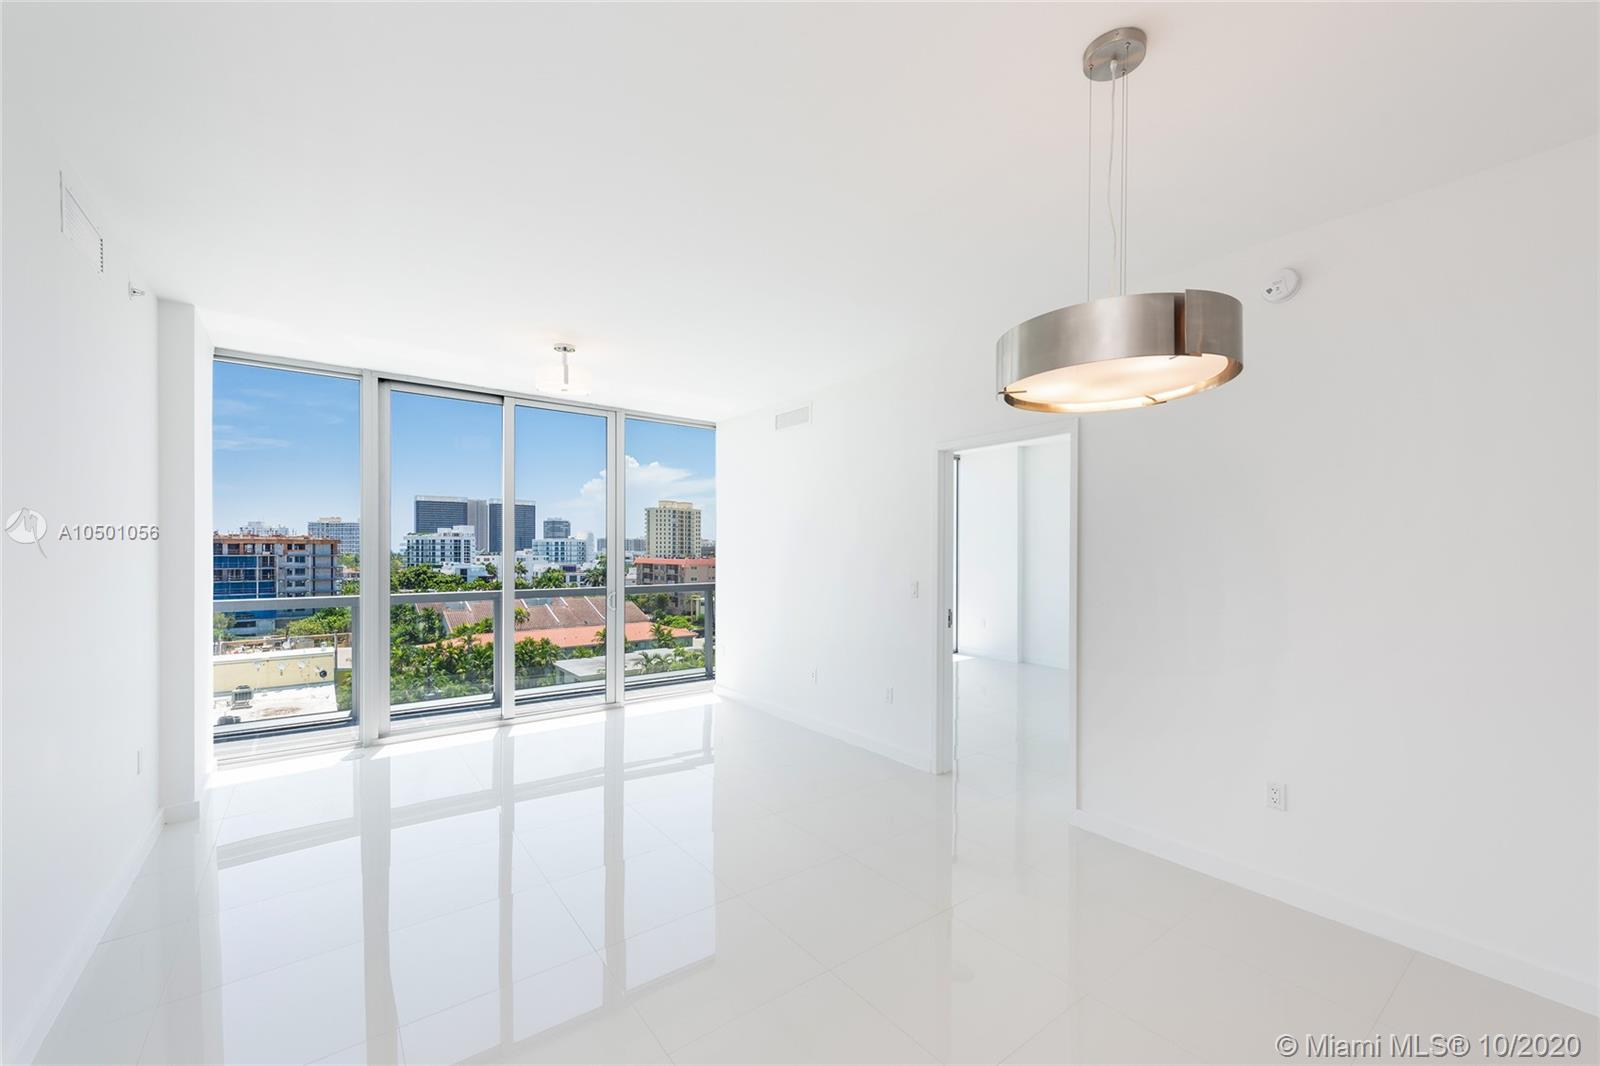 Motivated Seller!! Stunning new unit on the top floor of Kai condo in Bay Harbor. No one has ever lived in it. 2BRs plus den (can be easily converted in 3rd bedroom), 3 full baths. Largest 2BR in building, white porcelain floors throughout, 10 ft ceilings, floor to ceiling windows, kitchen w/Bosch appliances, Mia Cucina cabinetry and Quartz countertops. Terrace runs the entire width of the unit. All hurricane impact windows and doors, 2 parking spots, 1 storage bin. This boutique luxury waterfront building offers its residents 24hr security, roof top pool with Jacuzzi, BBQ and more. Walking distance to the beach and just steps from the famous Bal Harbour Shops & fine dining. Dock slips are available.